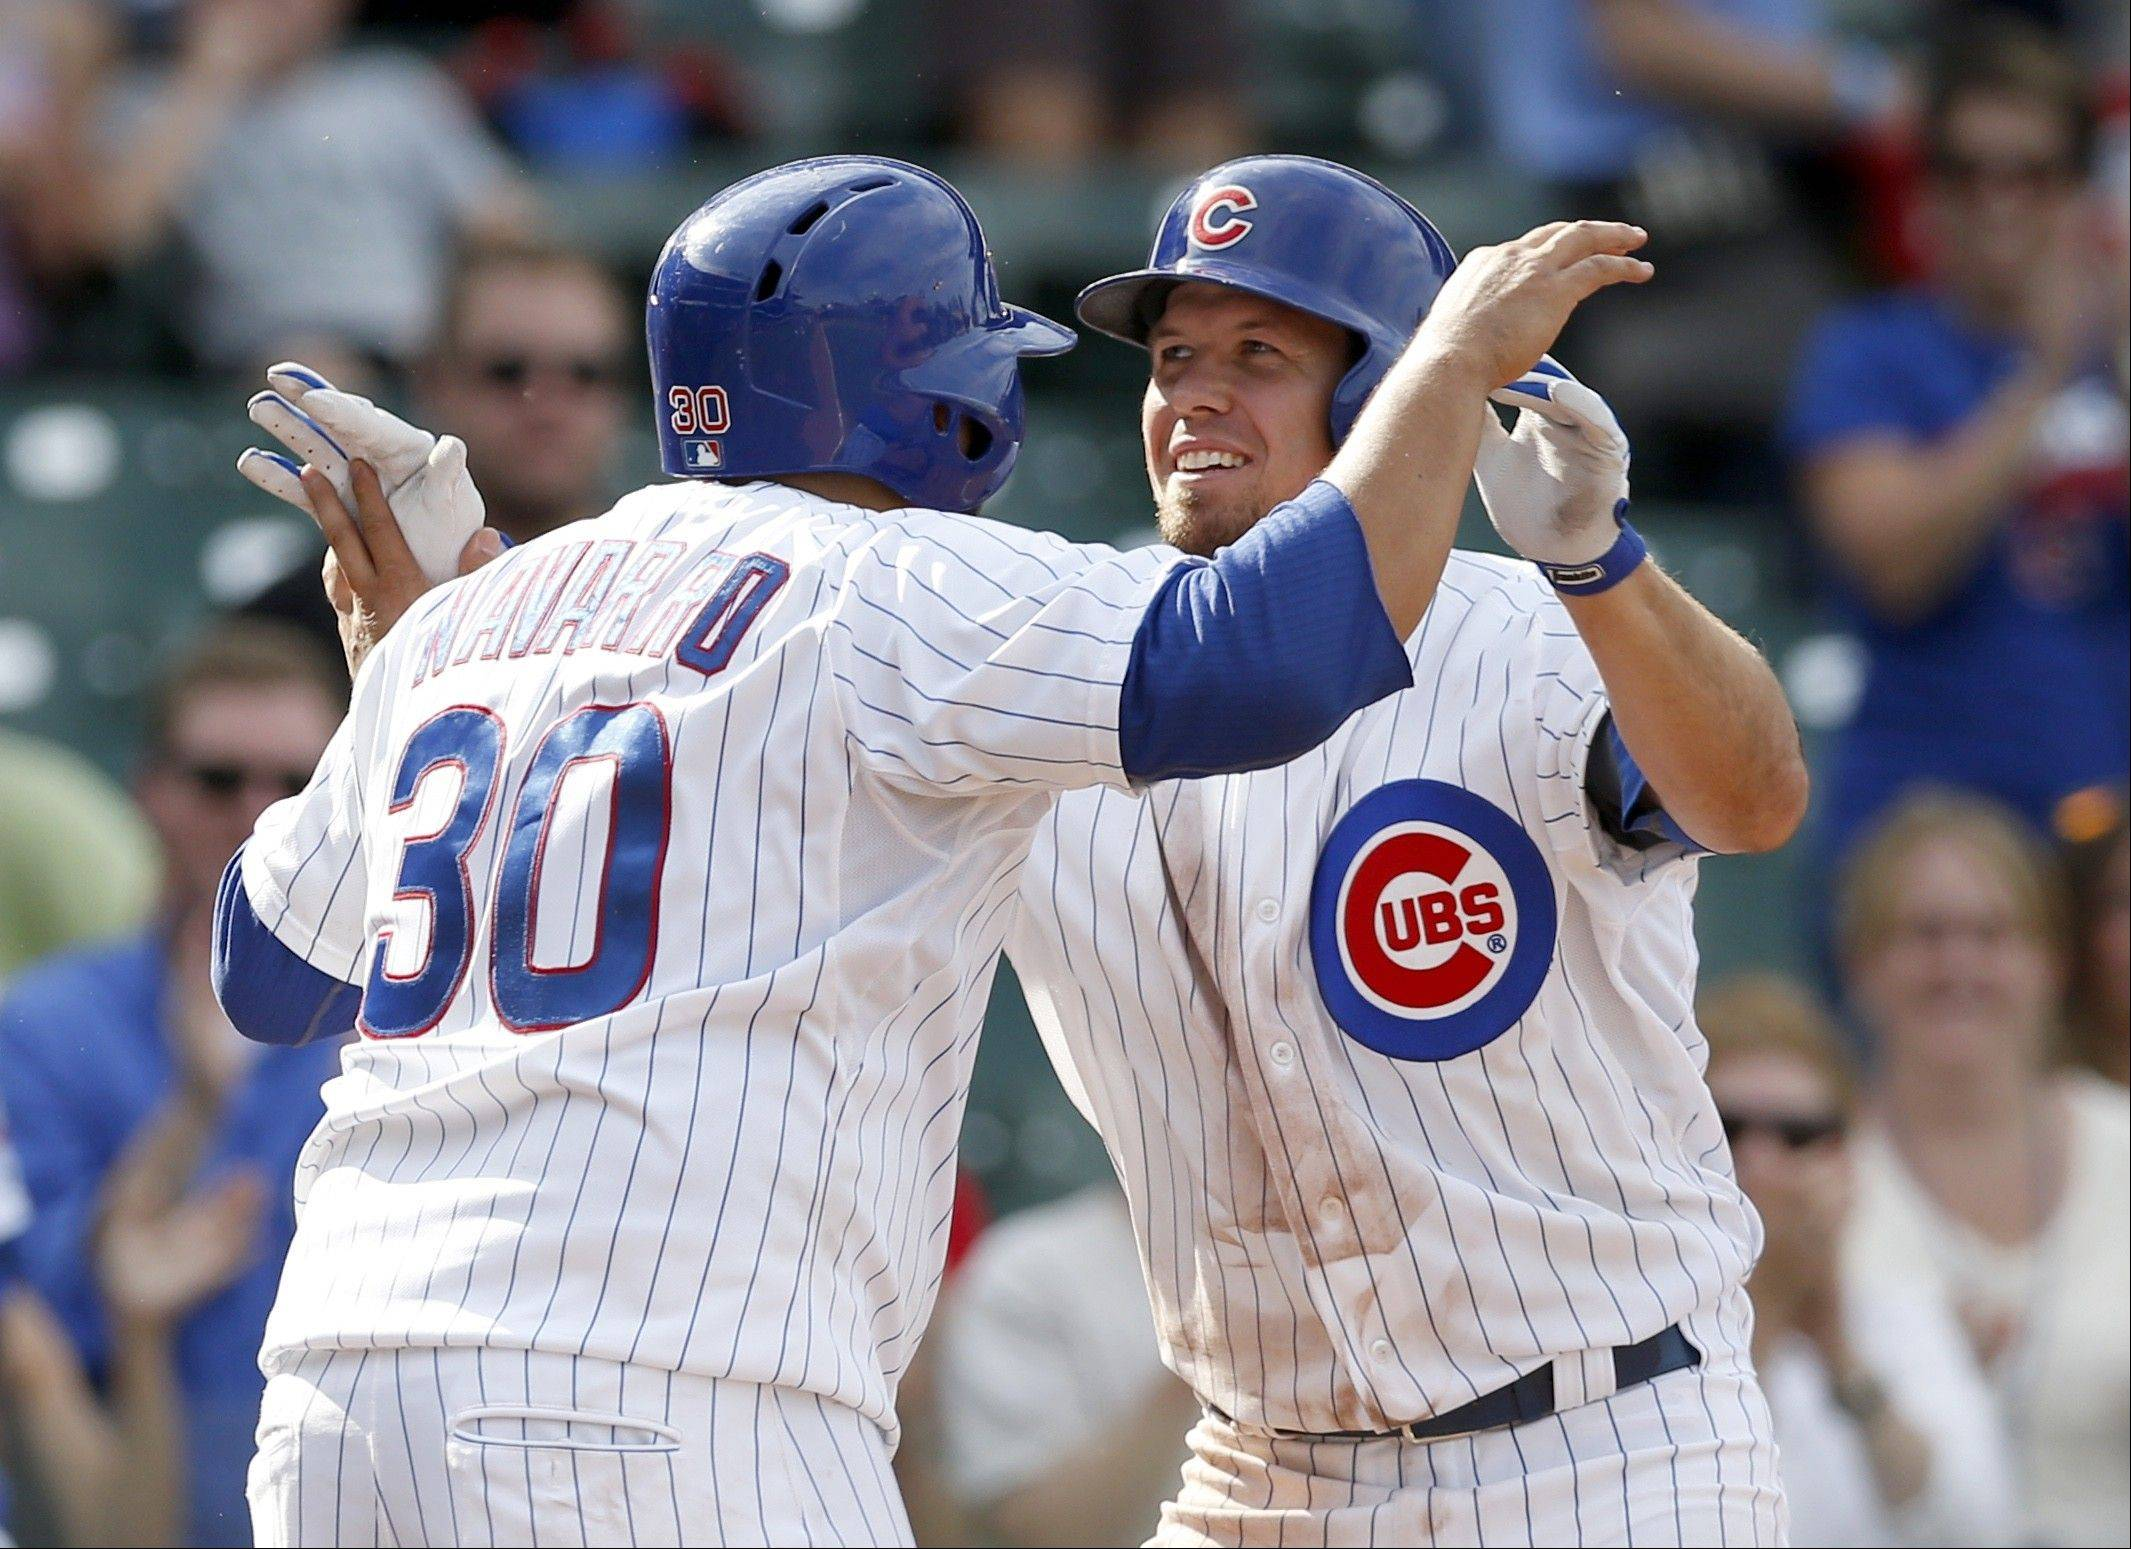 The Cubs' Dioner Navarro (30) and Donnie Murphy celebrate after the pair scored on Murphy's home run off Miami Marlins relief pitcher Ryan Webb during the seventh inning of a baseball game Wednesday, Sept. 4, 2013, in Chicago.